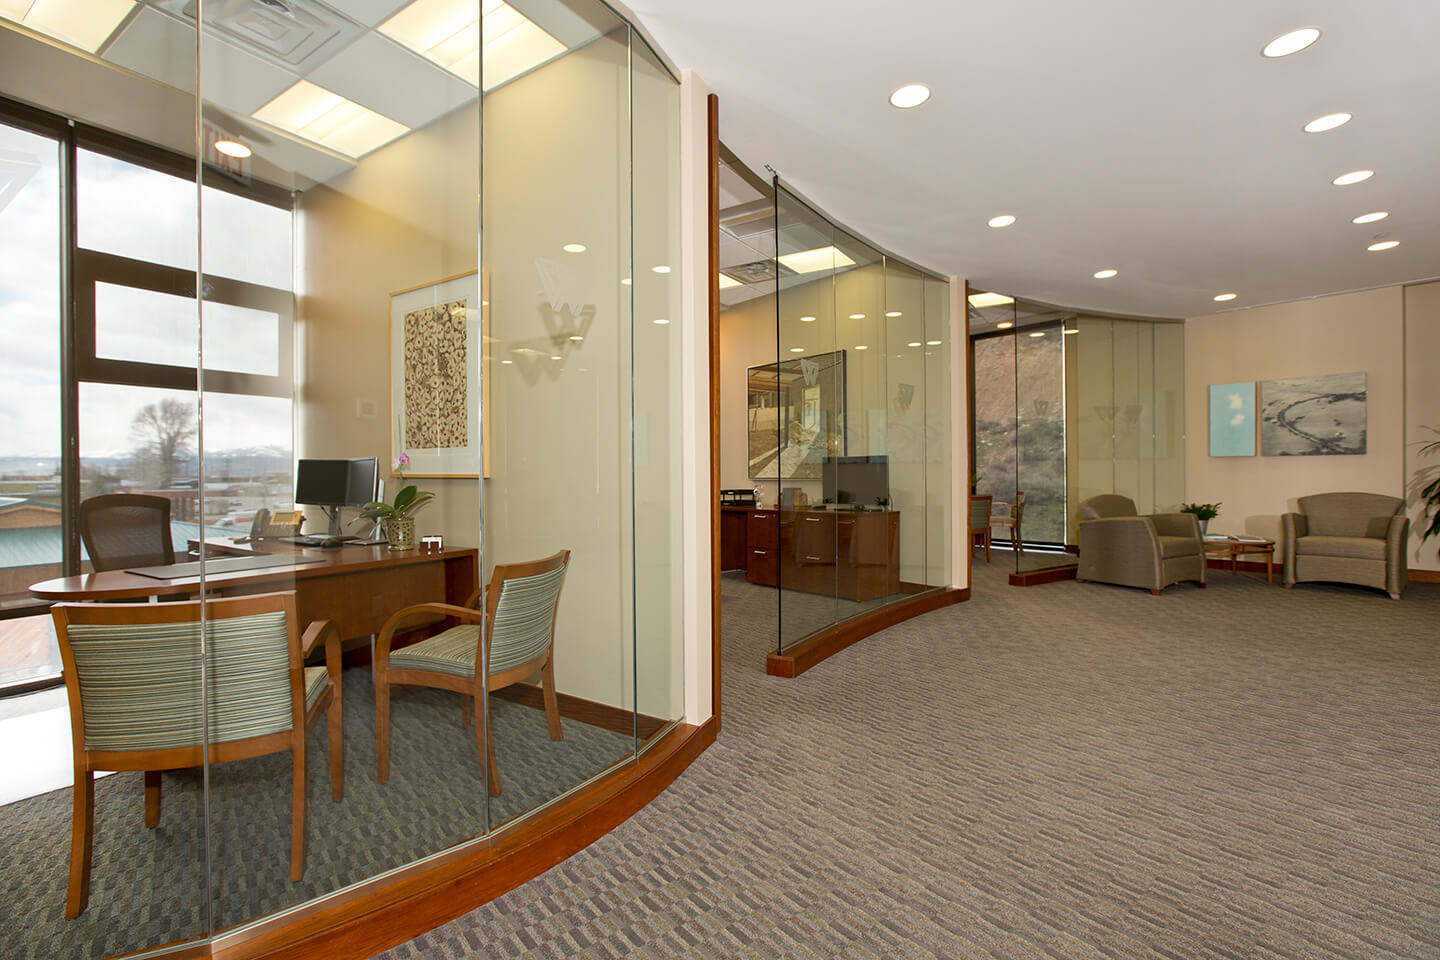 Three offices with curved glass walls